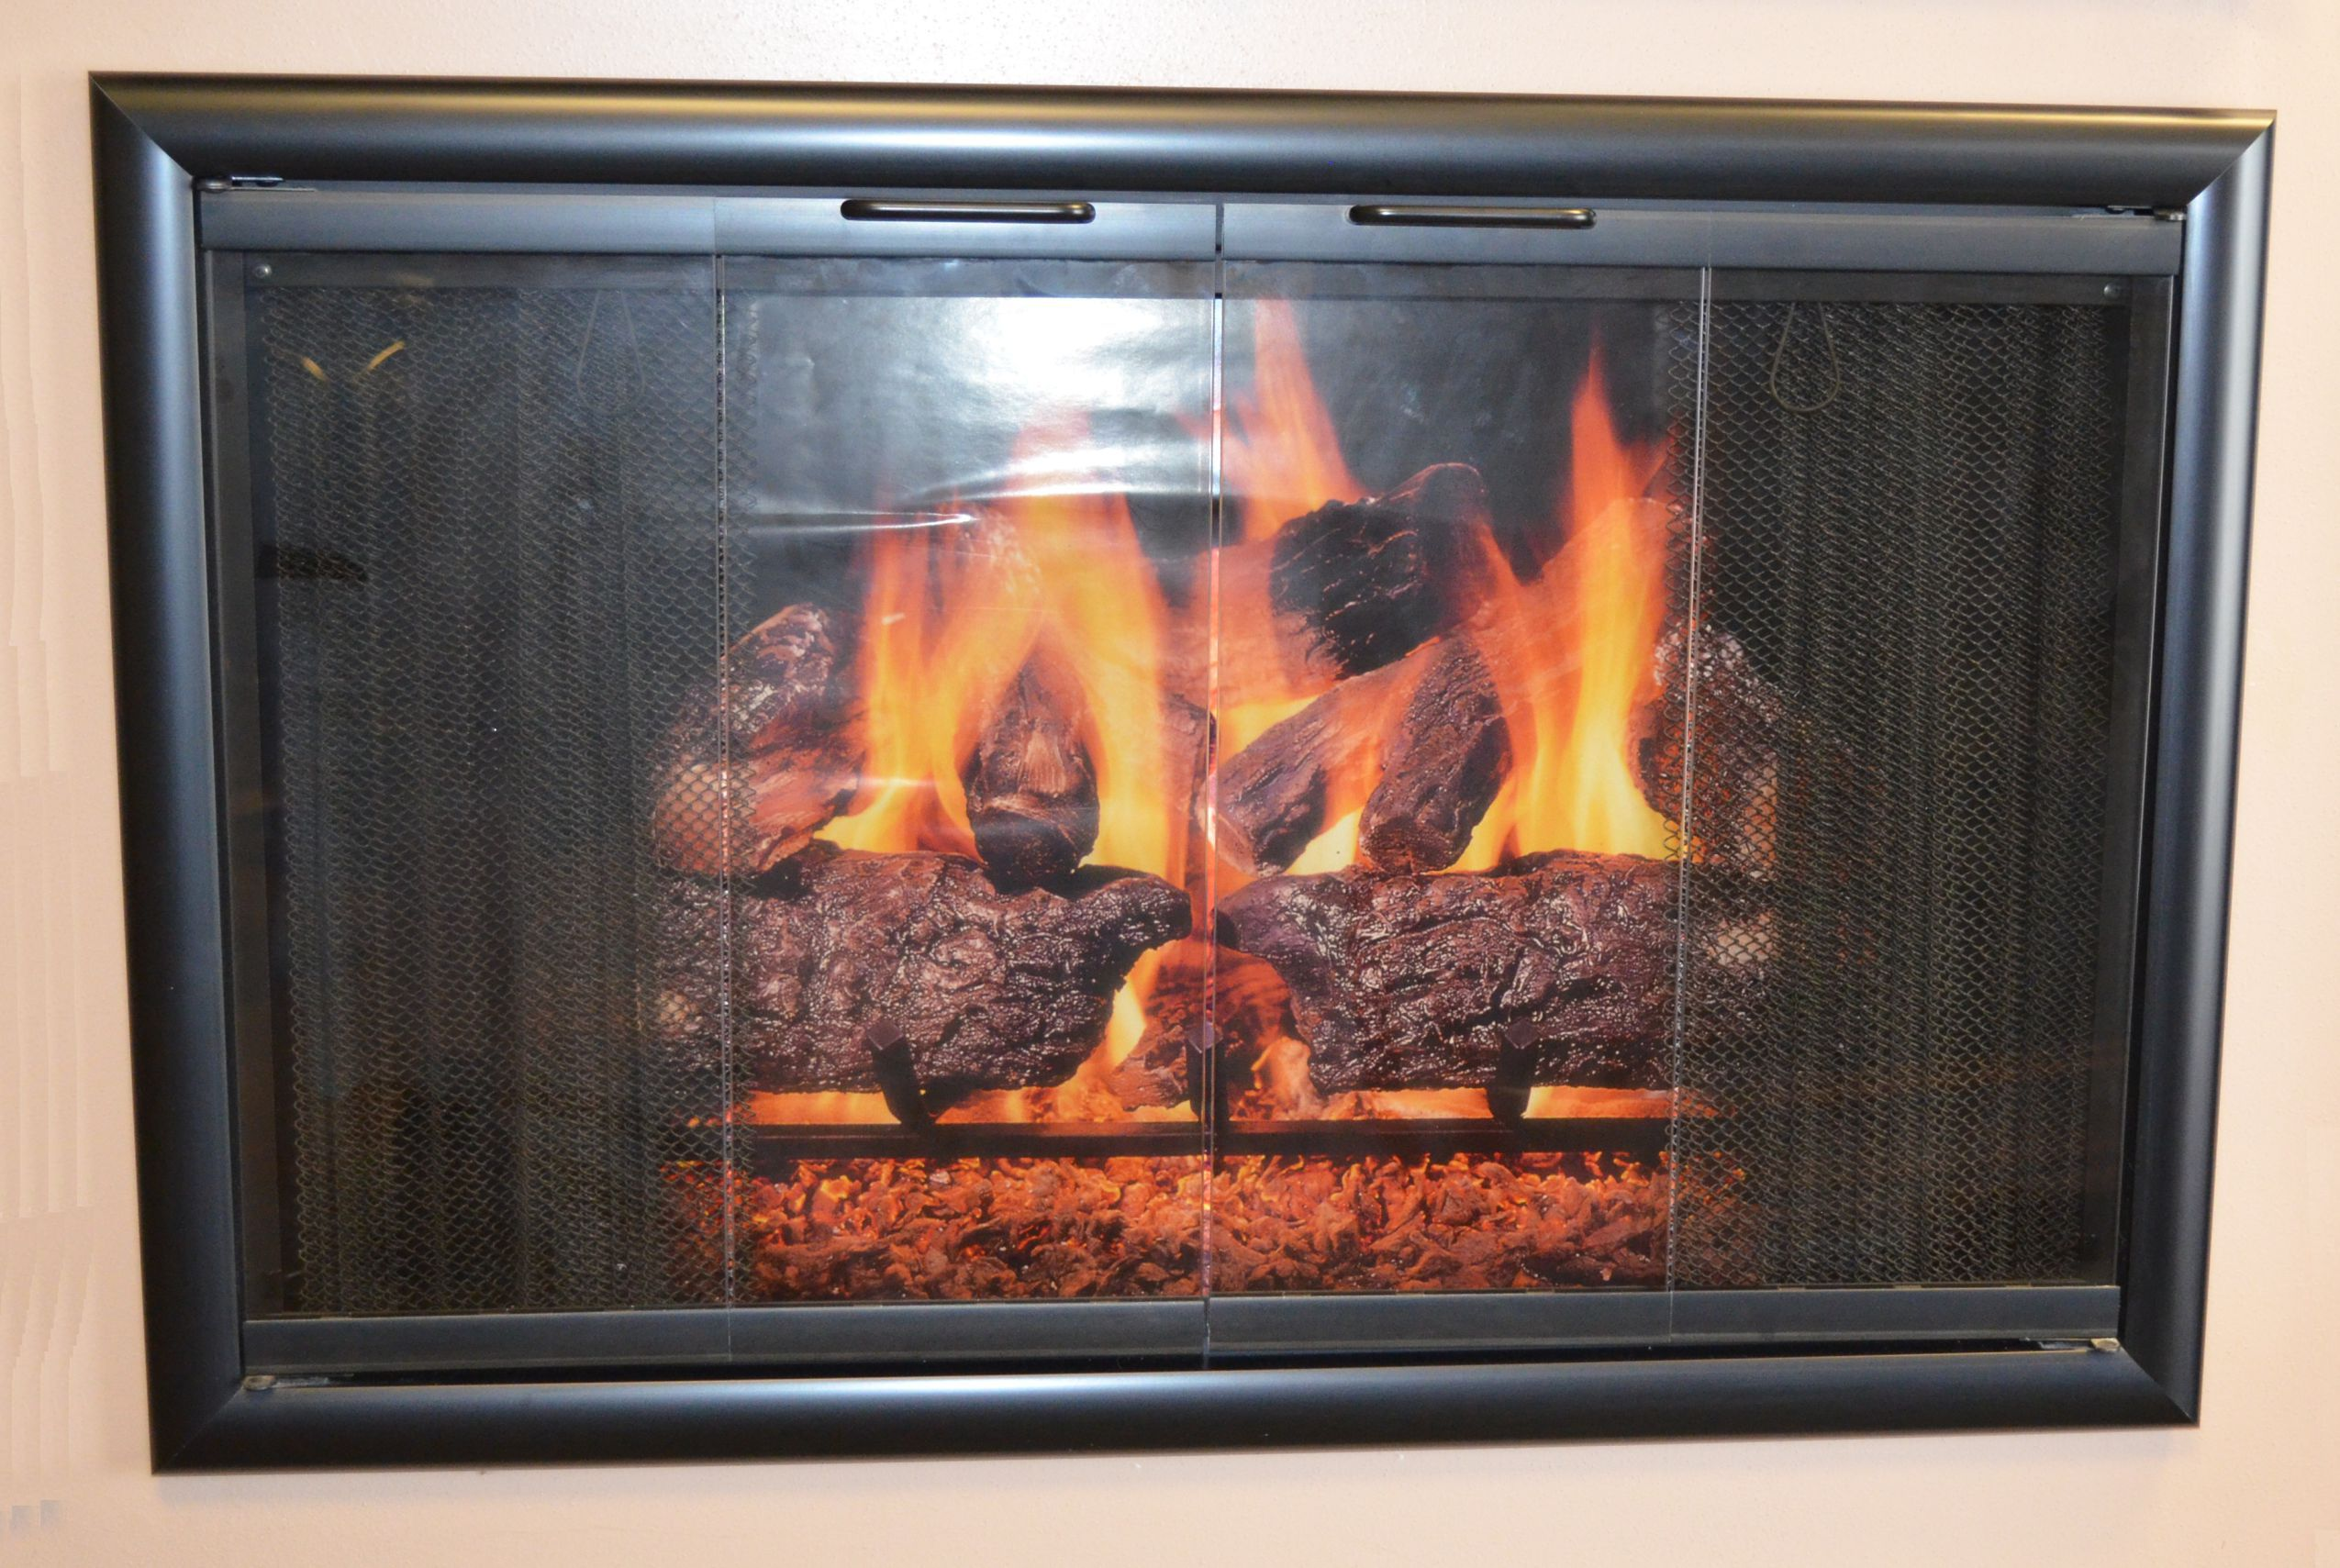 3825 Horizon Fireplace Door In Flat Black